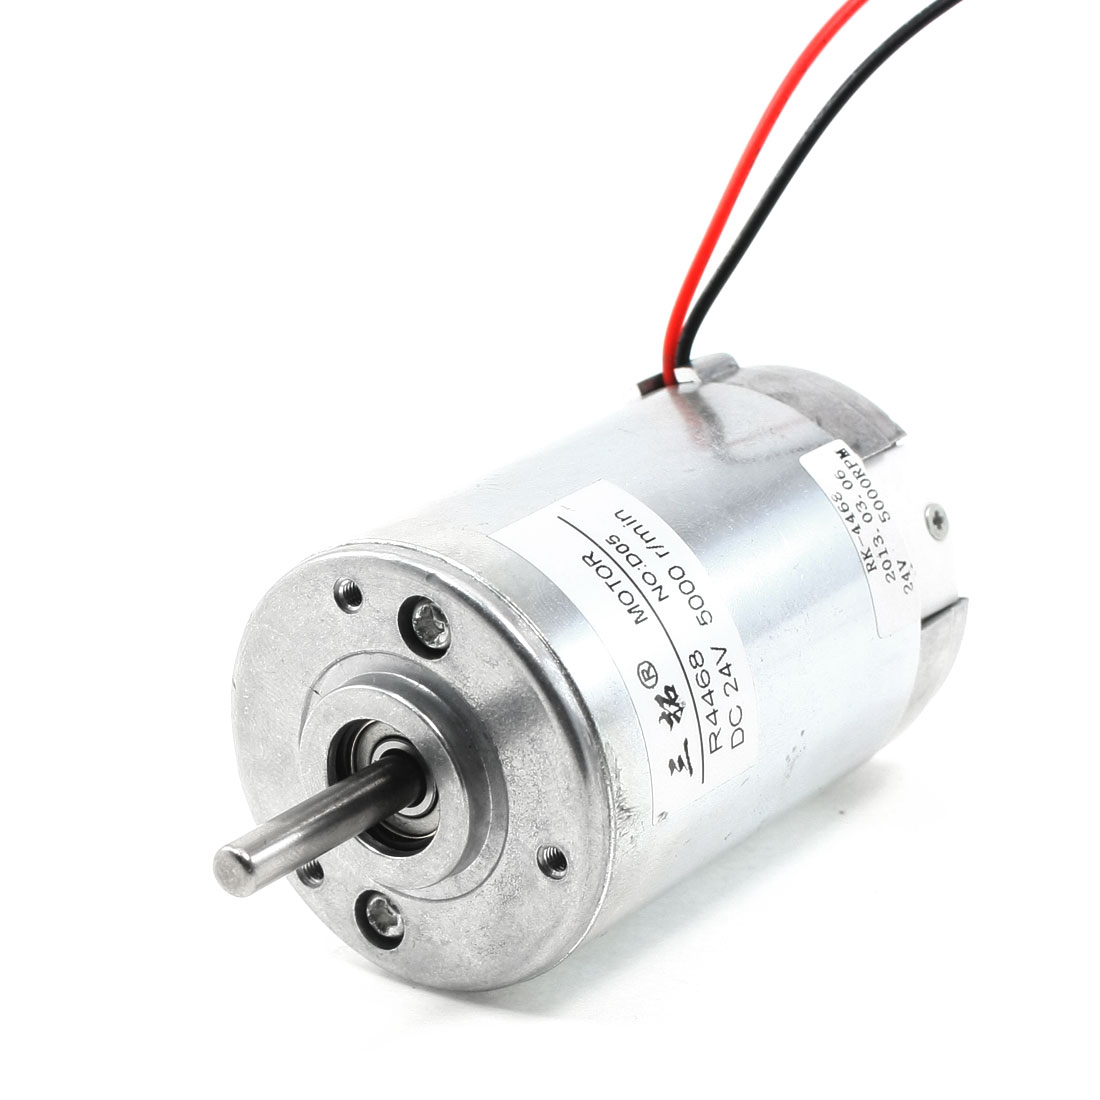 24V 5A 5000RPM 2-Wire Connector Speed Reduce DC Gearbox Motor